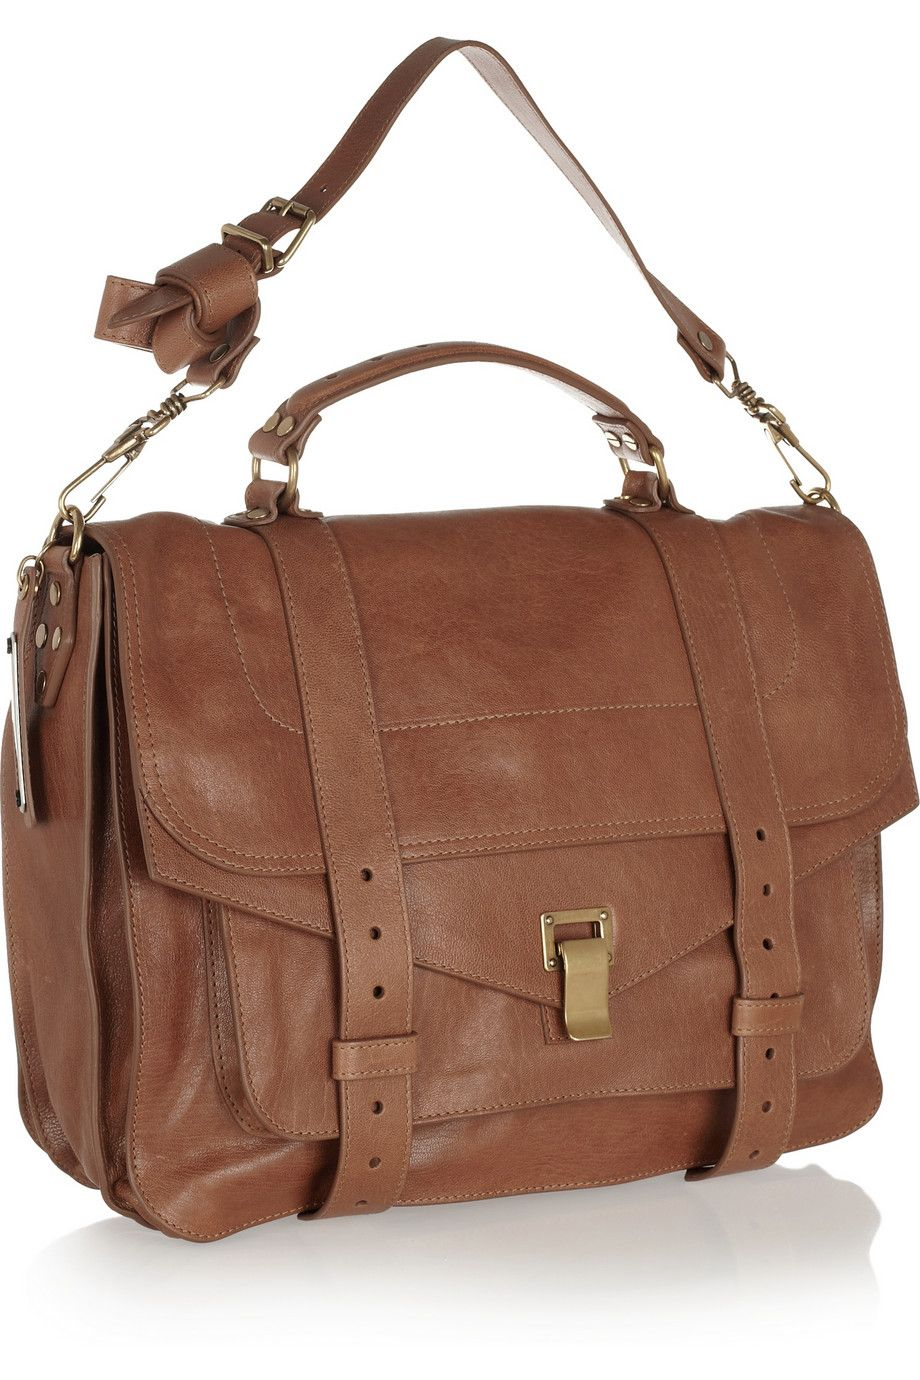 Proenza Schouler The Large Leather Satchel